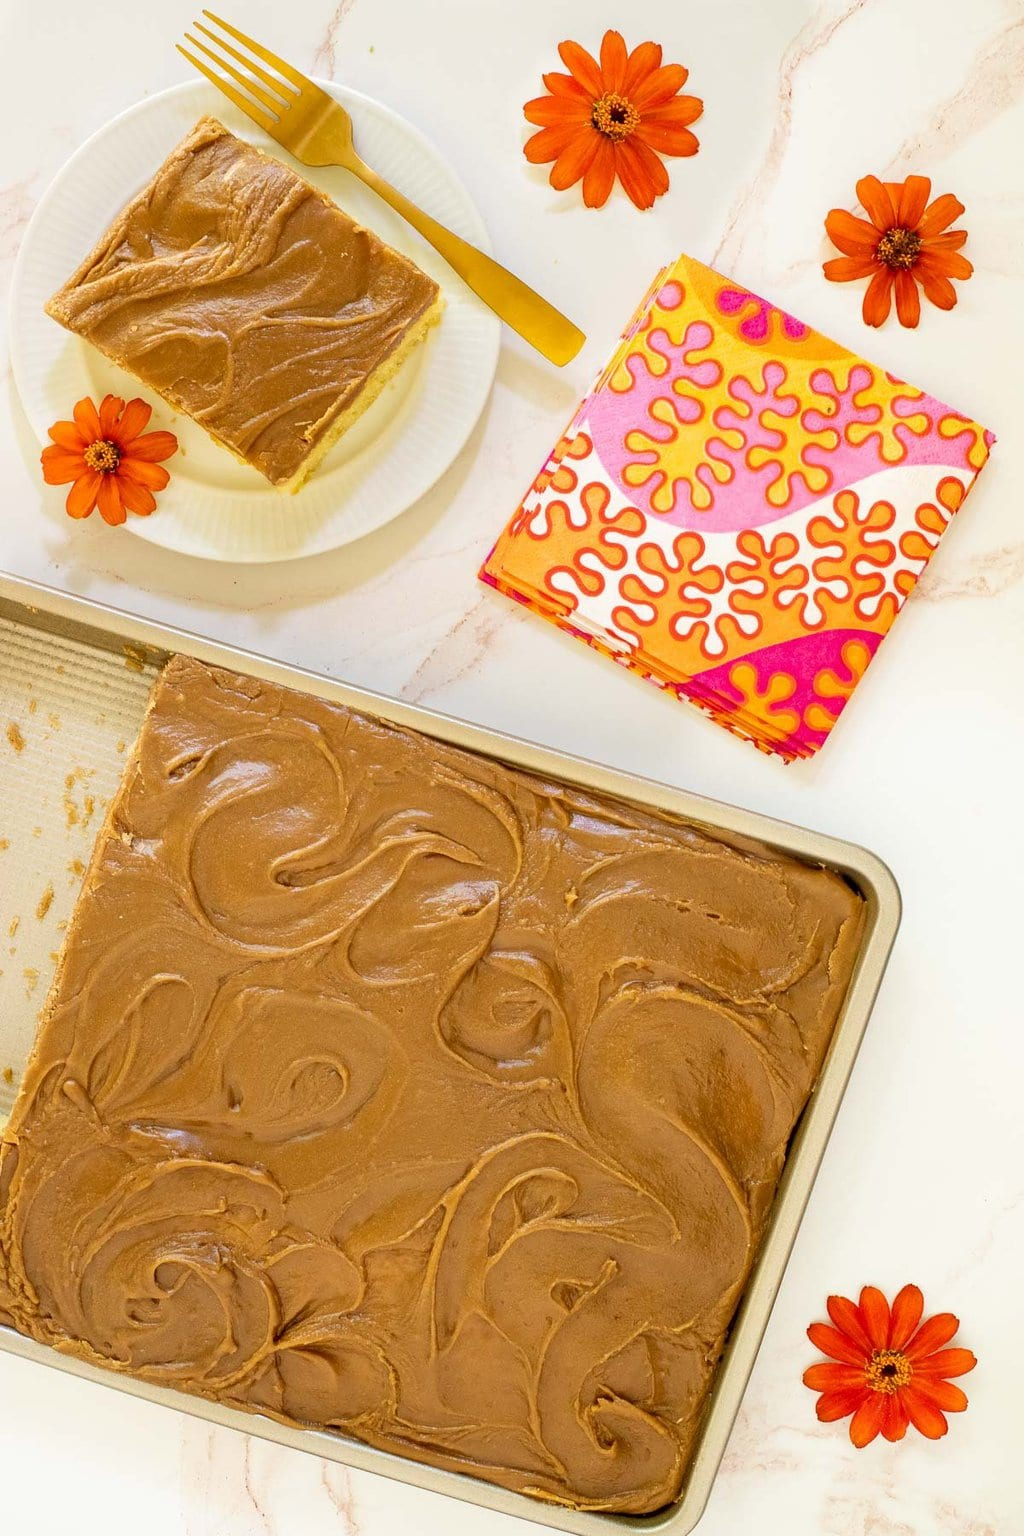 Vertical overhead photo of a Ridiculously Easy Caramel Buttermilk Sheet Cake with an individual slice on a small white serving plate.